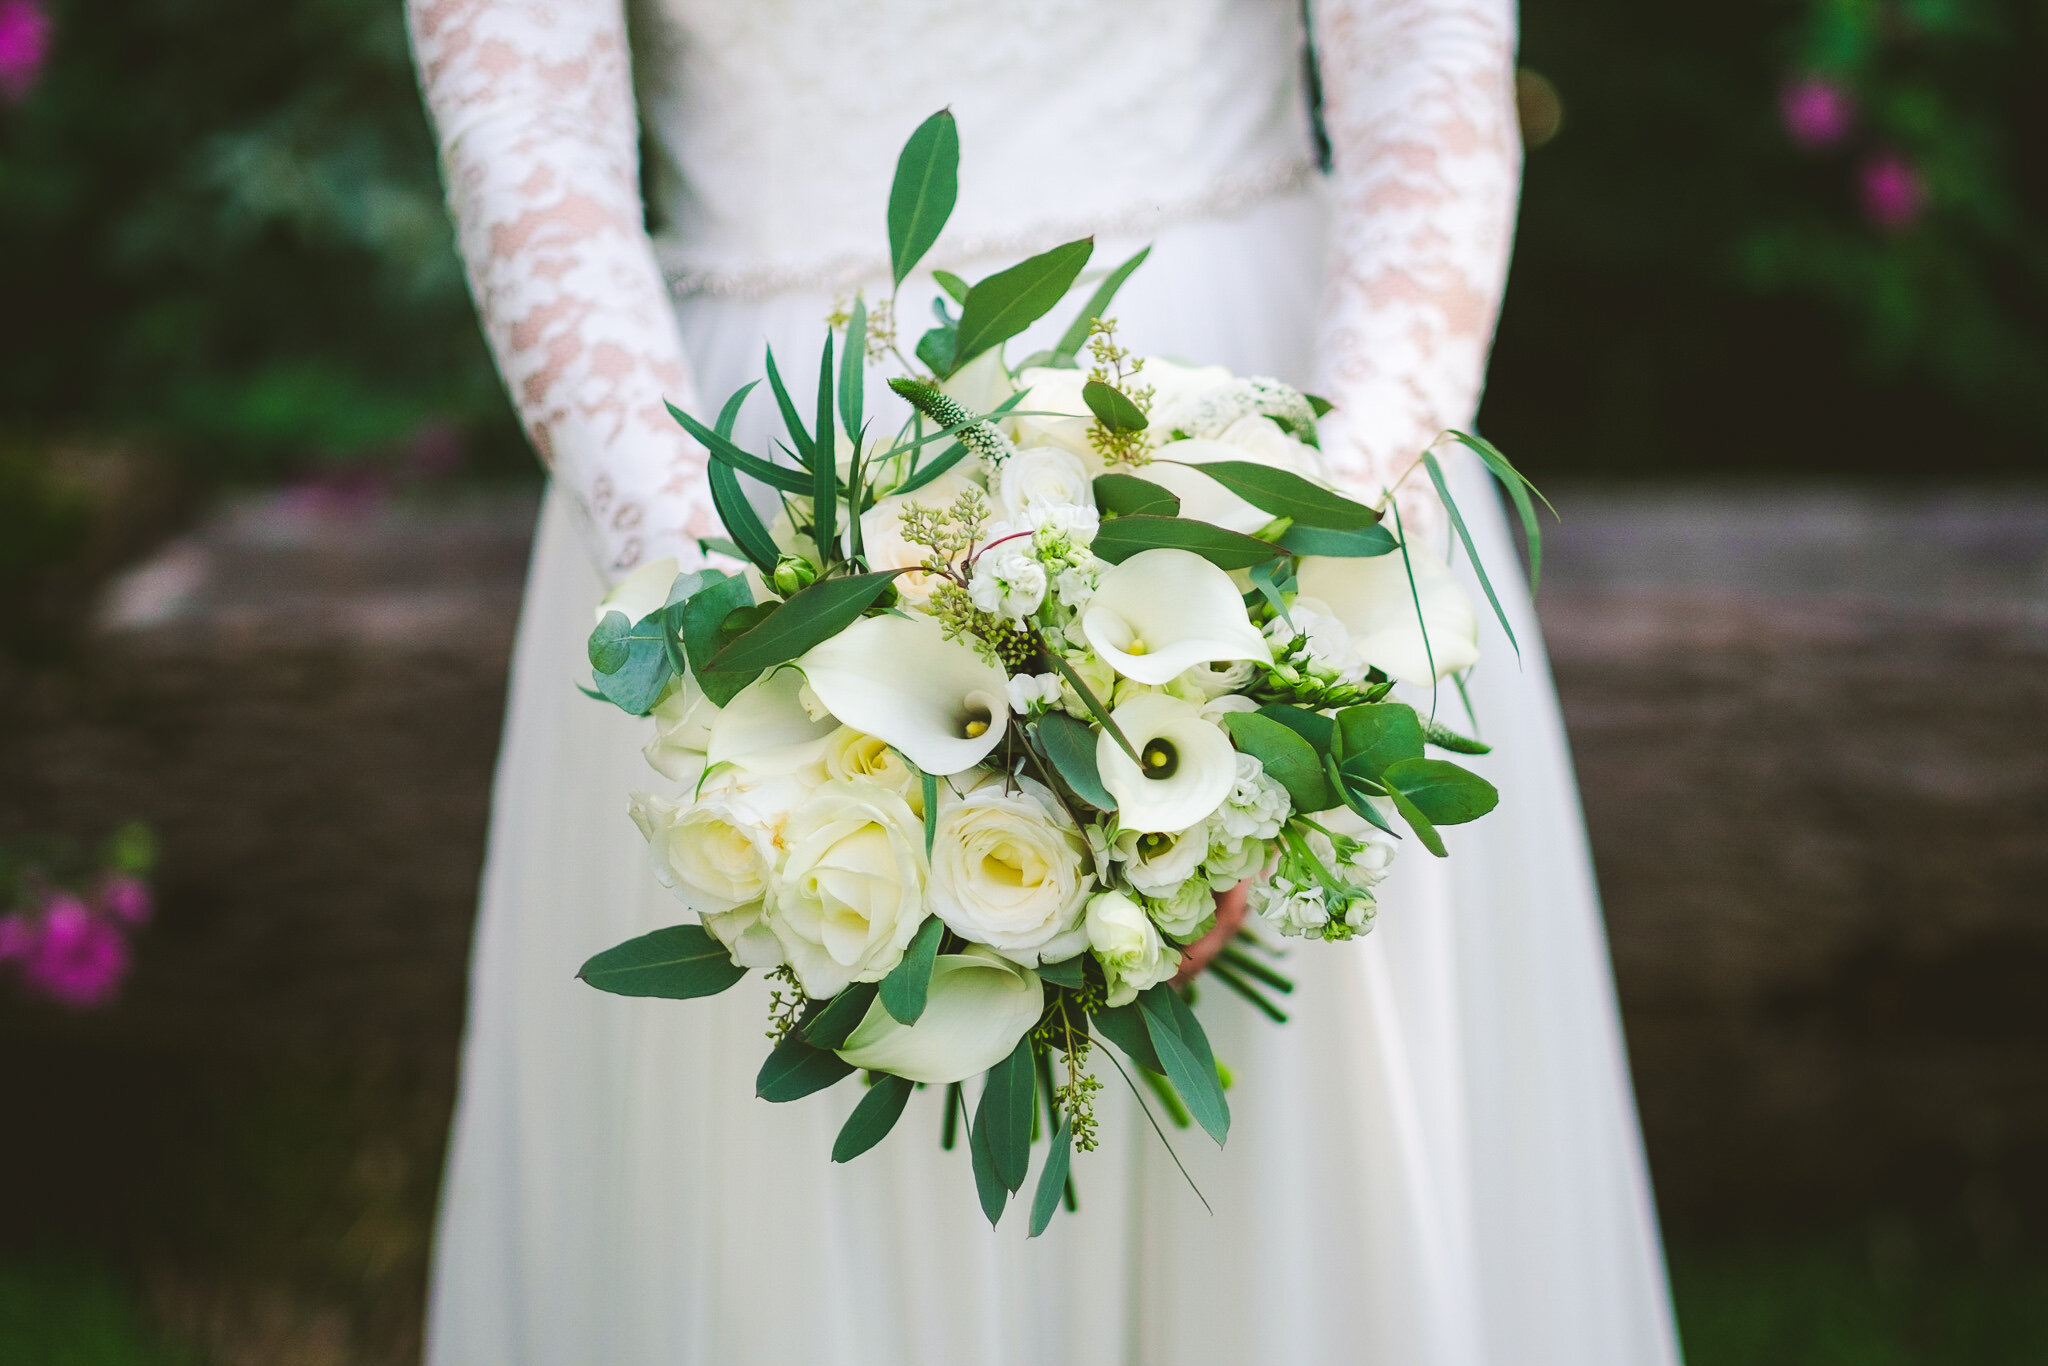 Alice's wedding bouquet by Sprig and Thistle